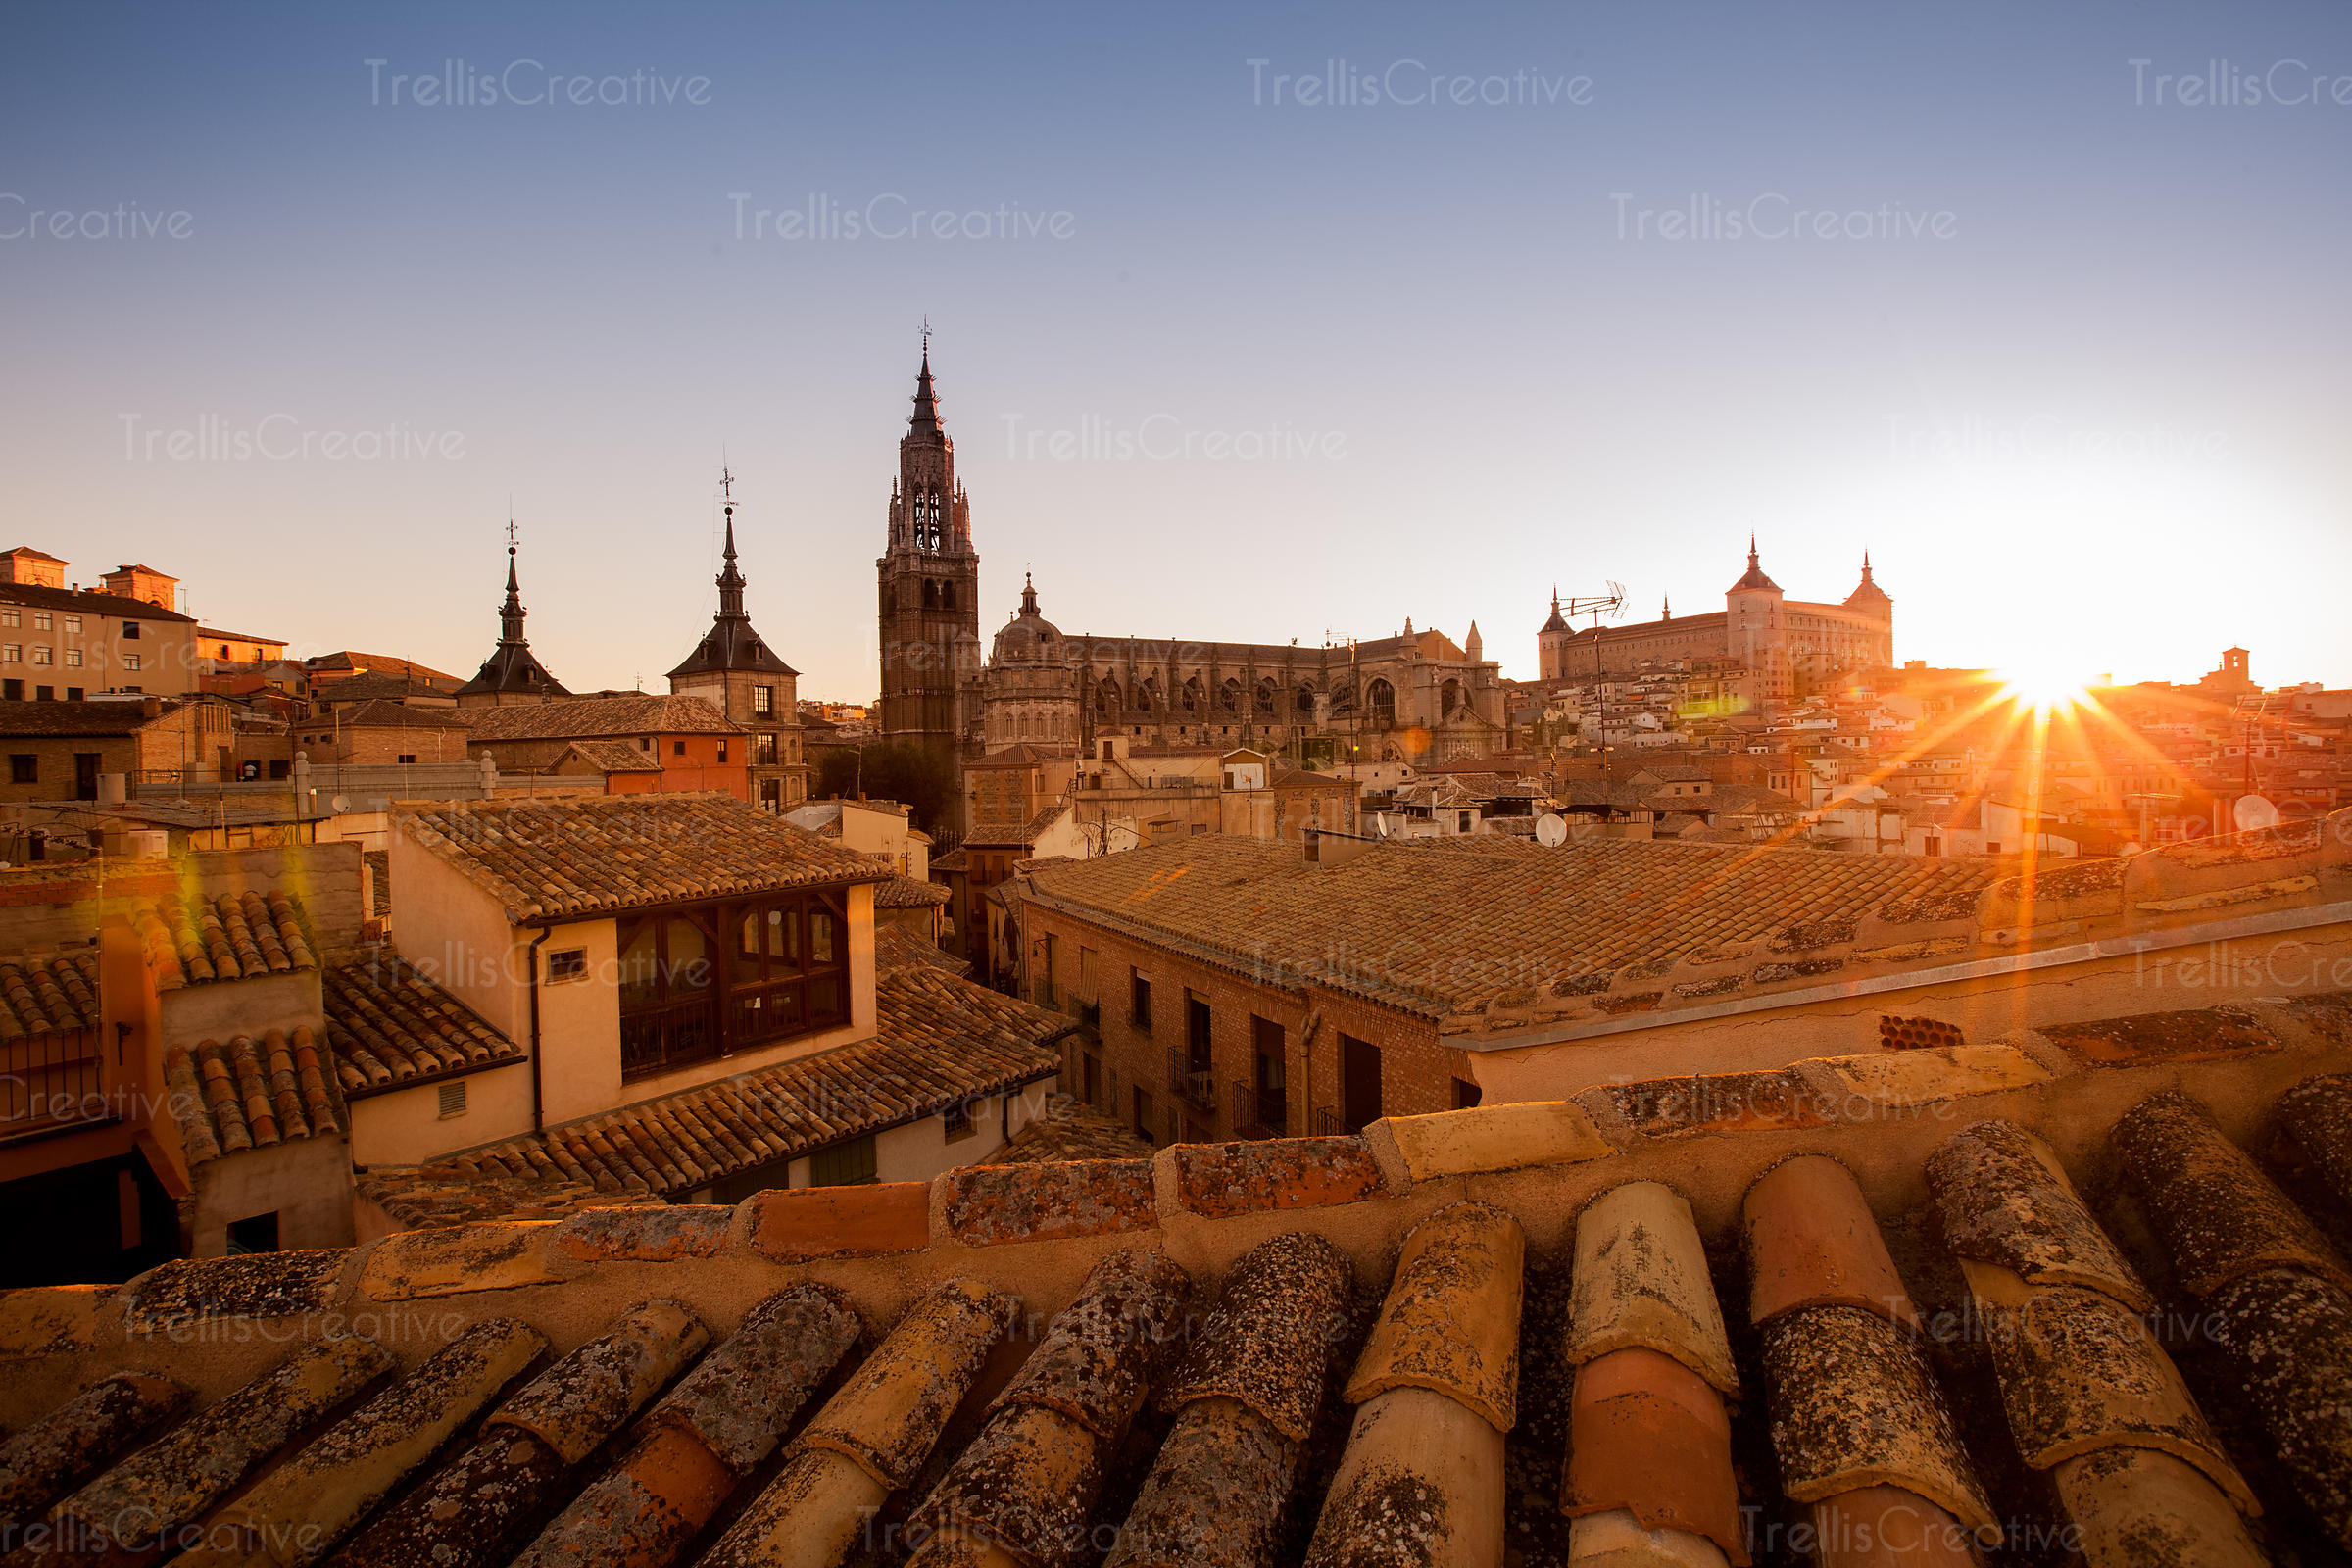 Sun rises over the historic town of Toledo, Spain